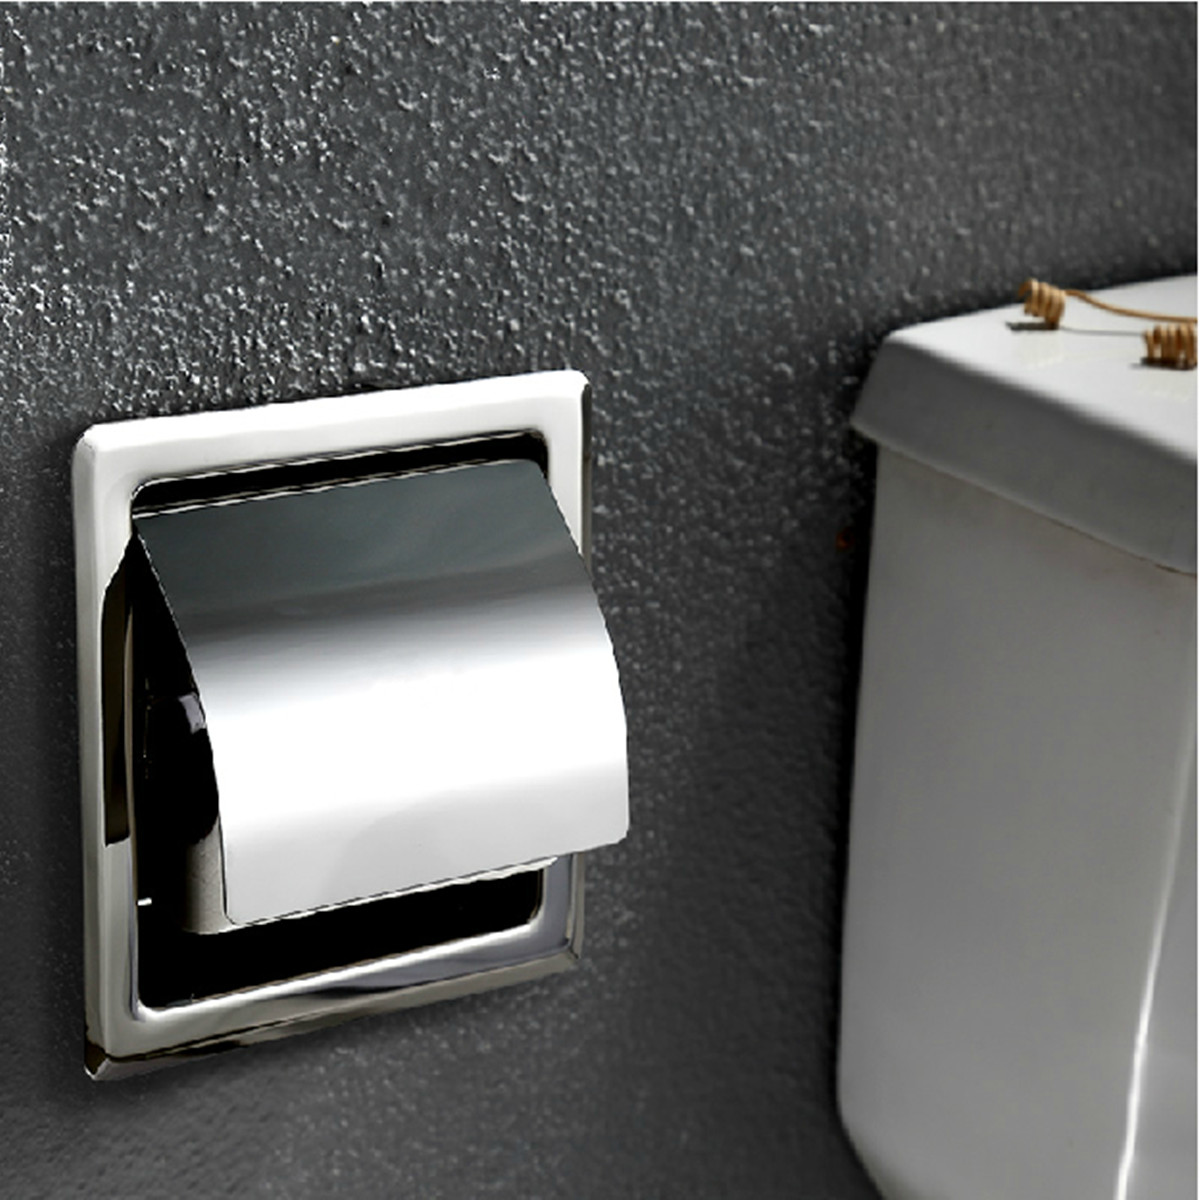 Covered Toilet Paper Storage In Wall Design Stainless Steel Bathroom Toilet Paper